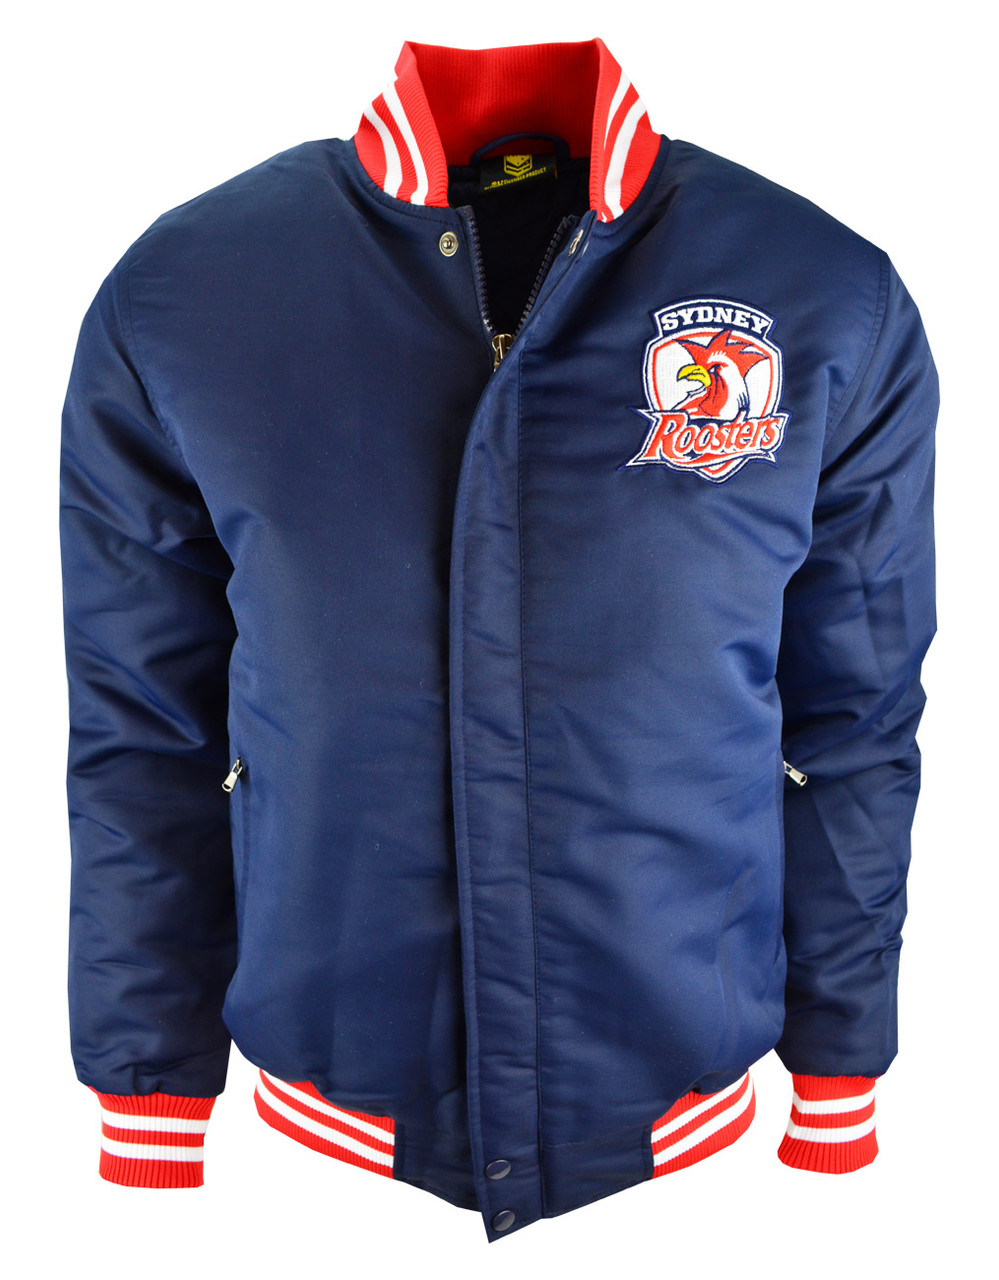 cc2d8c018 Sydney Roosters 2019 Mens Classic Club Varsity Jacket - Roosters Shop